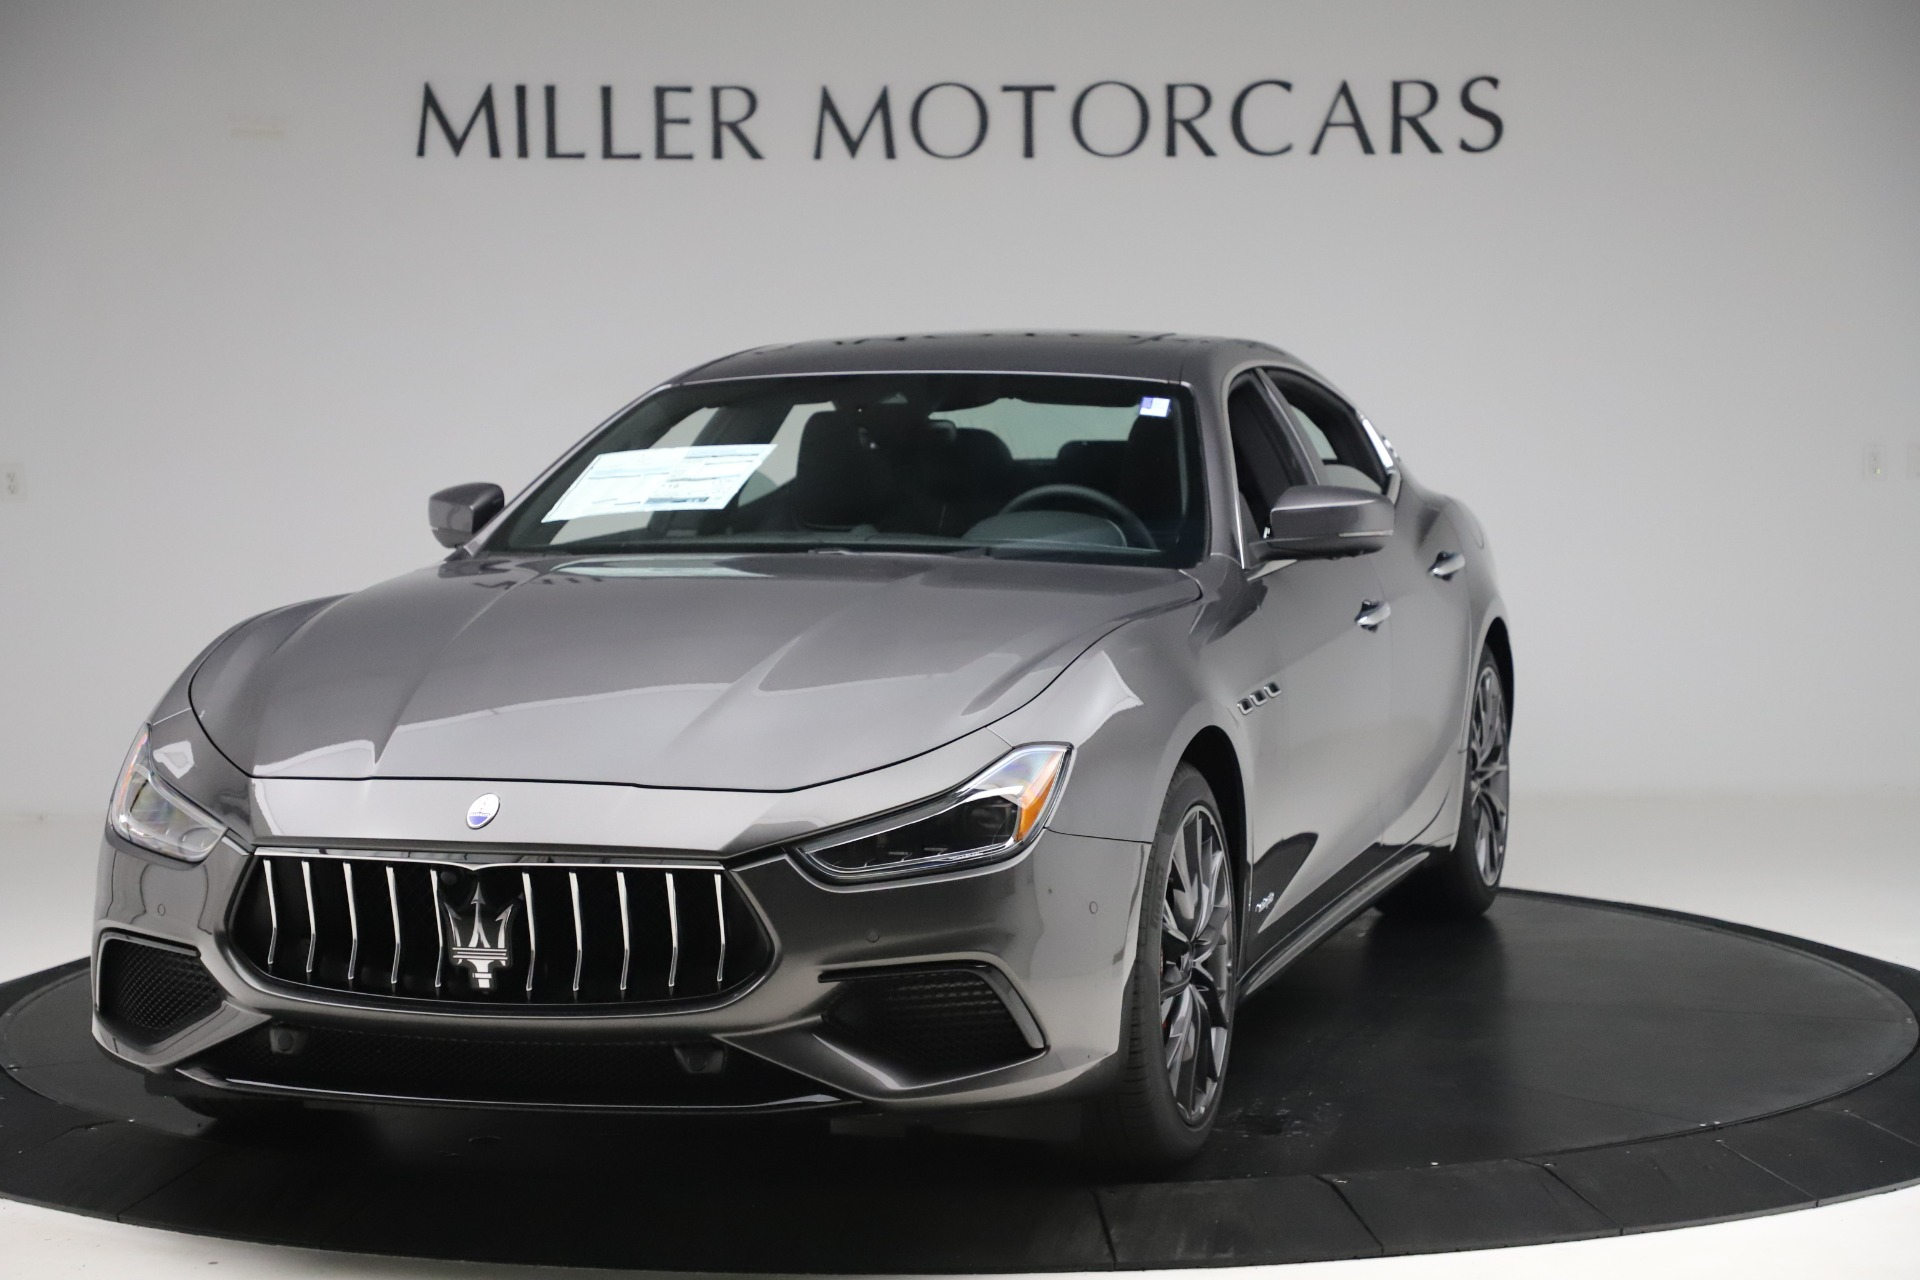 New 2019 Maserati Ghibli S Q4 GranSport for sale $100,695 at Rolls-Royce Motor Cars Greenwich in Greenwich CT 06830 1